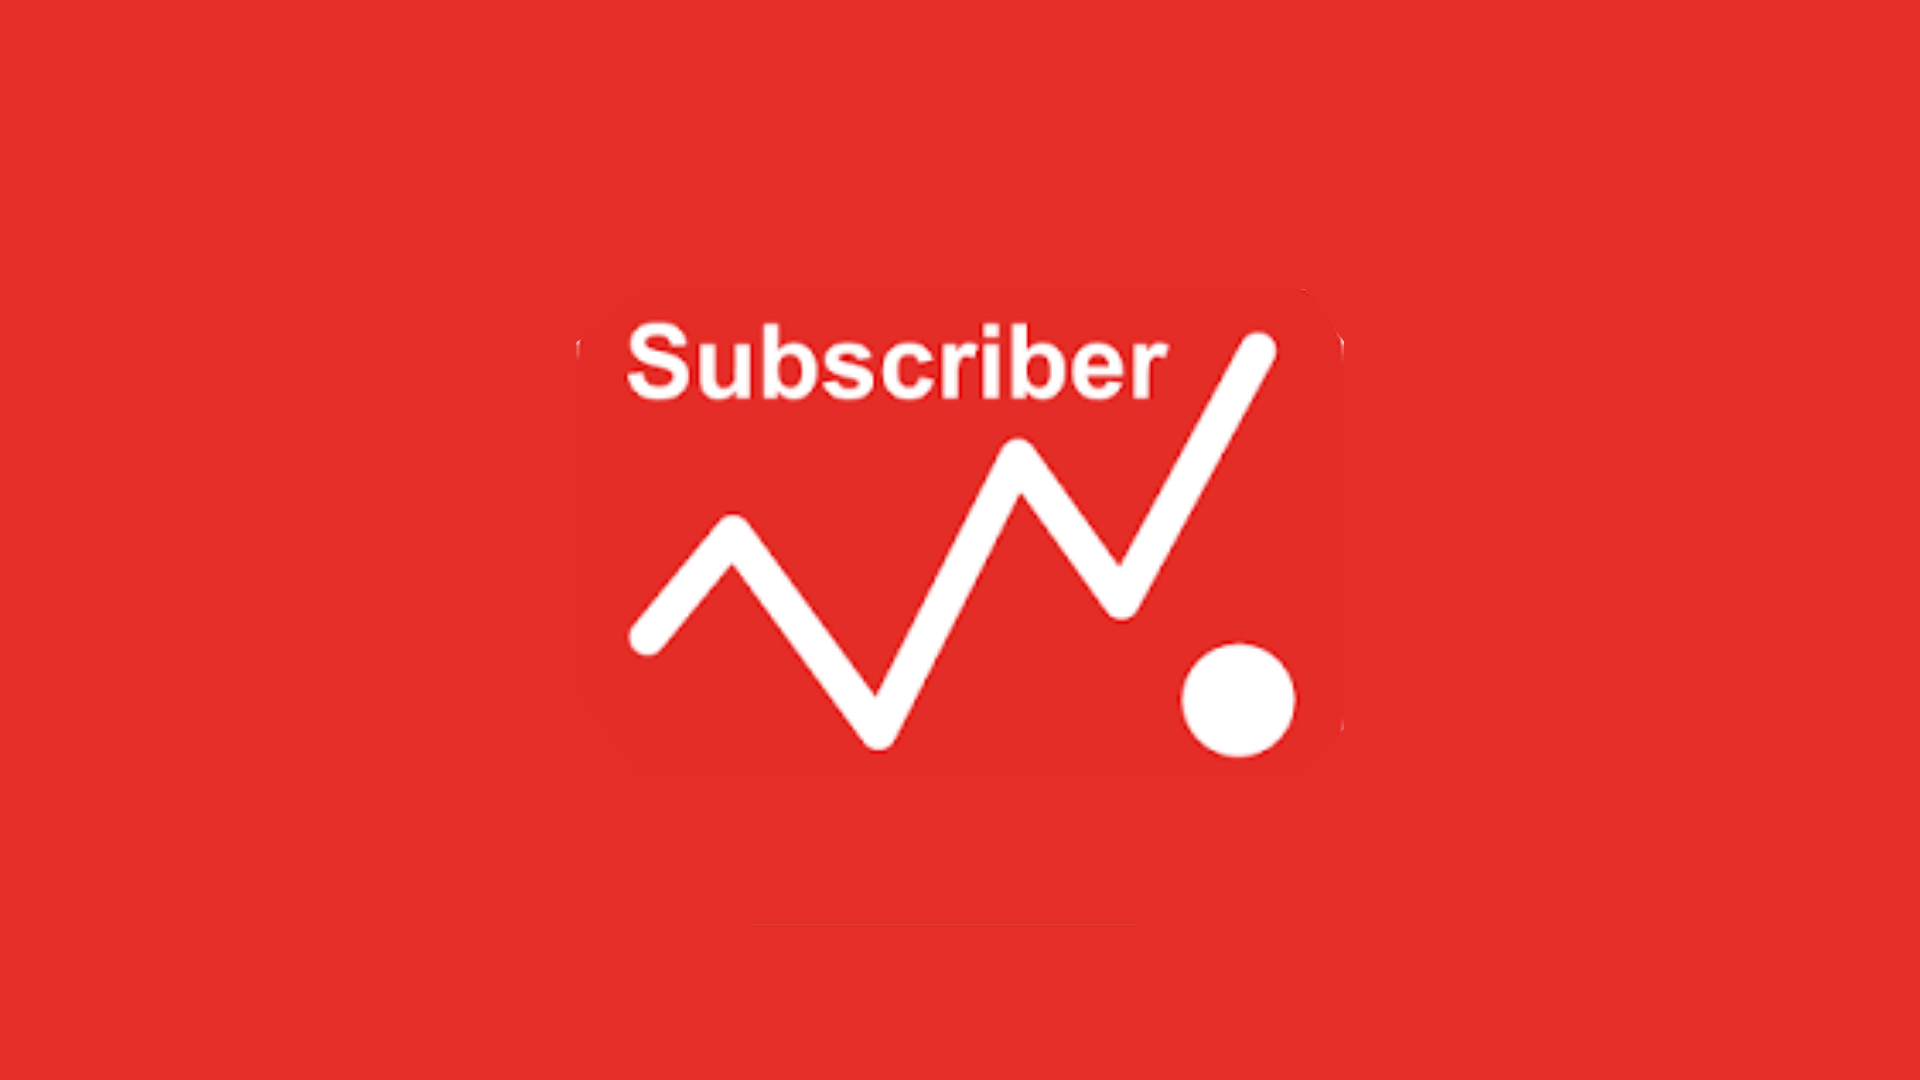 How YouTube Real-Time Subscriber Count Works